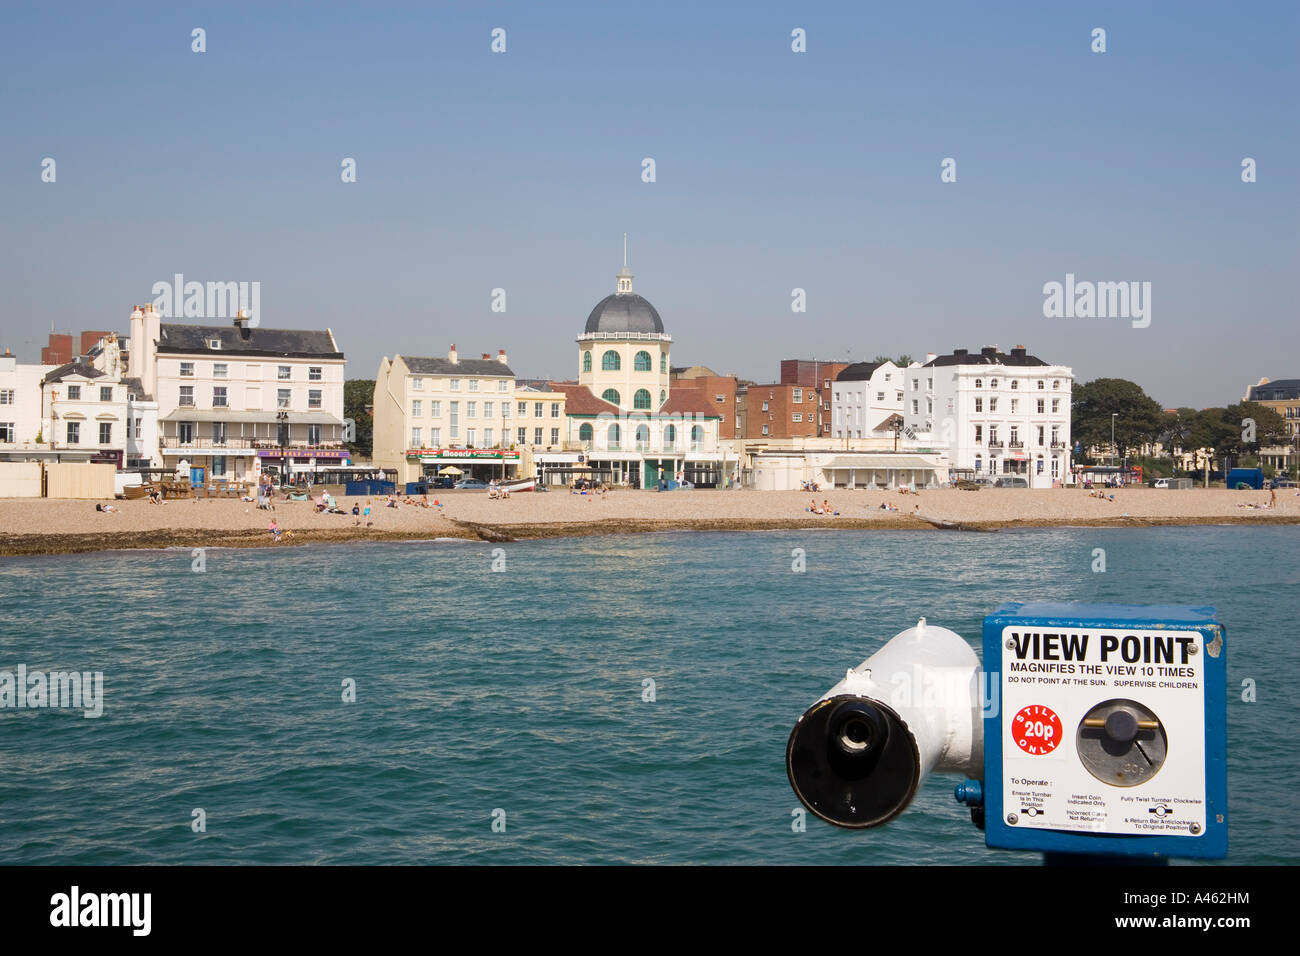 ENGLAND West Sussex Worthing fghds - Stock Image